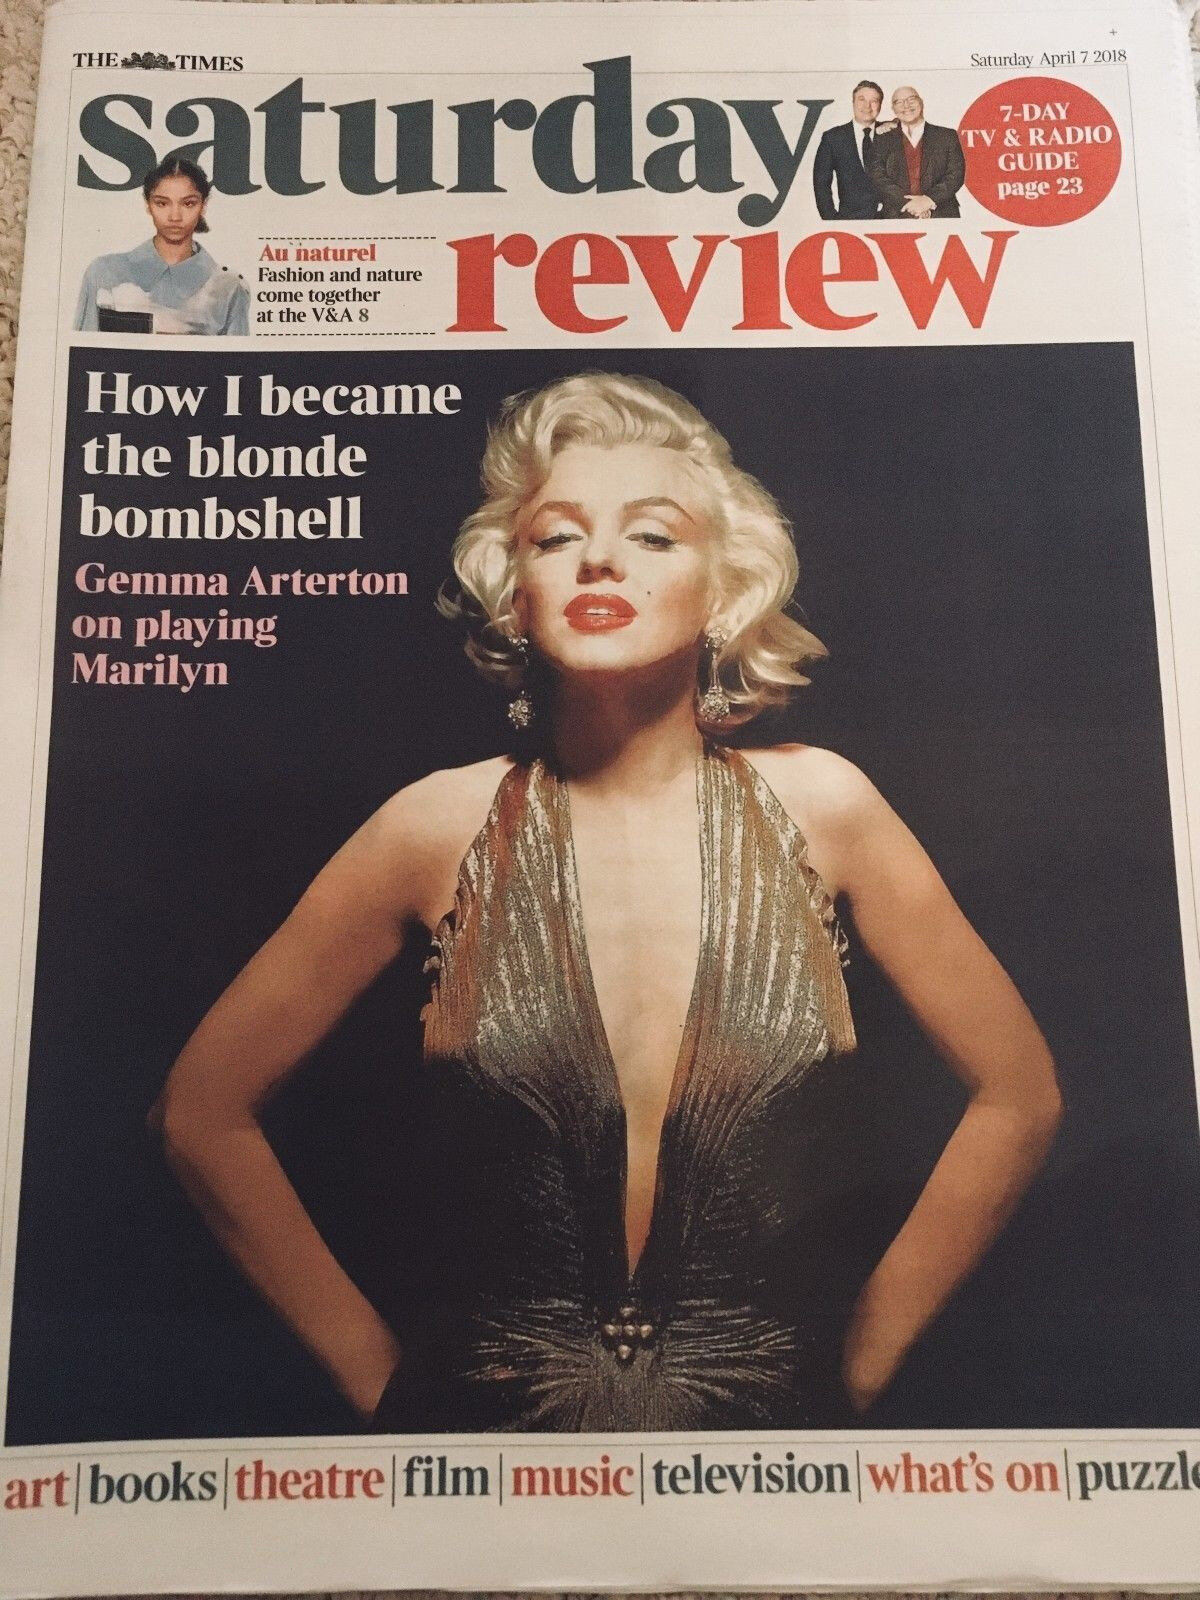 2018-04-07-UK_Times_Review-UK